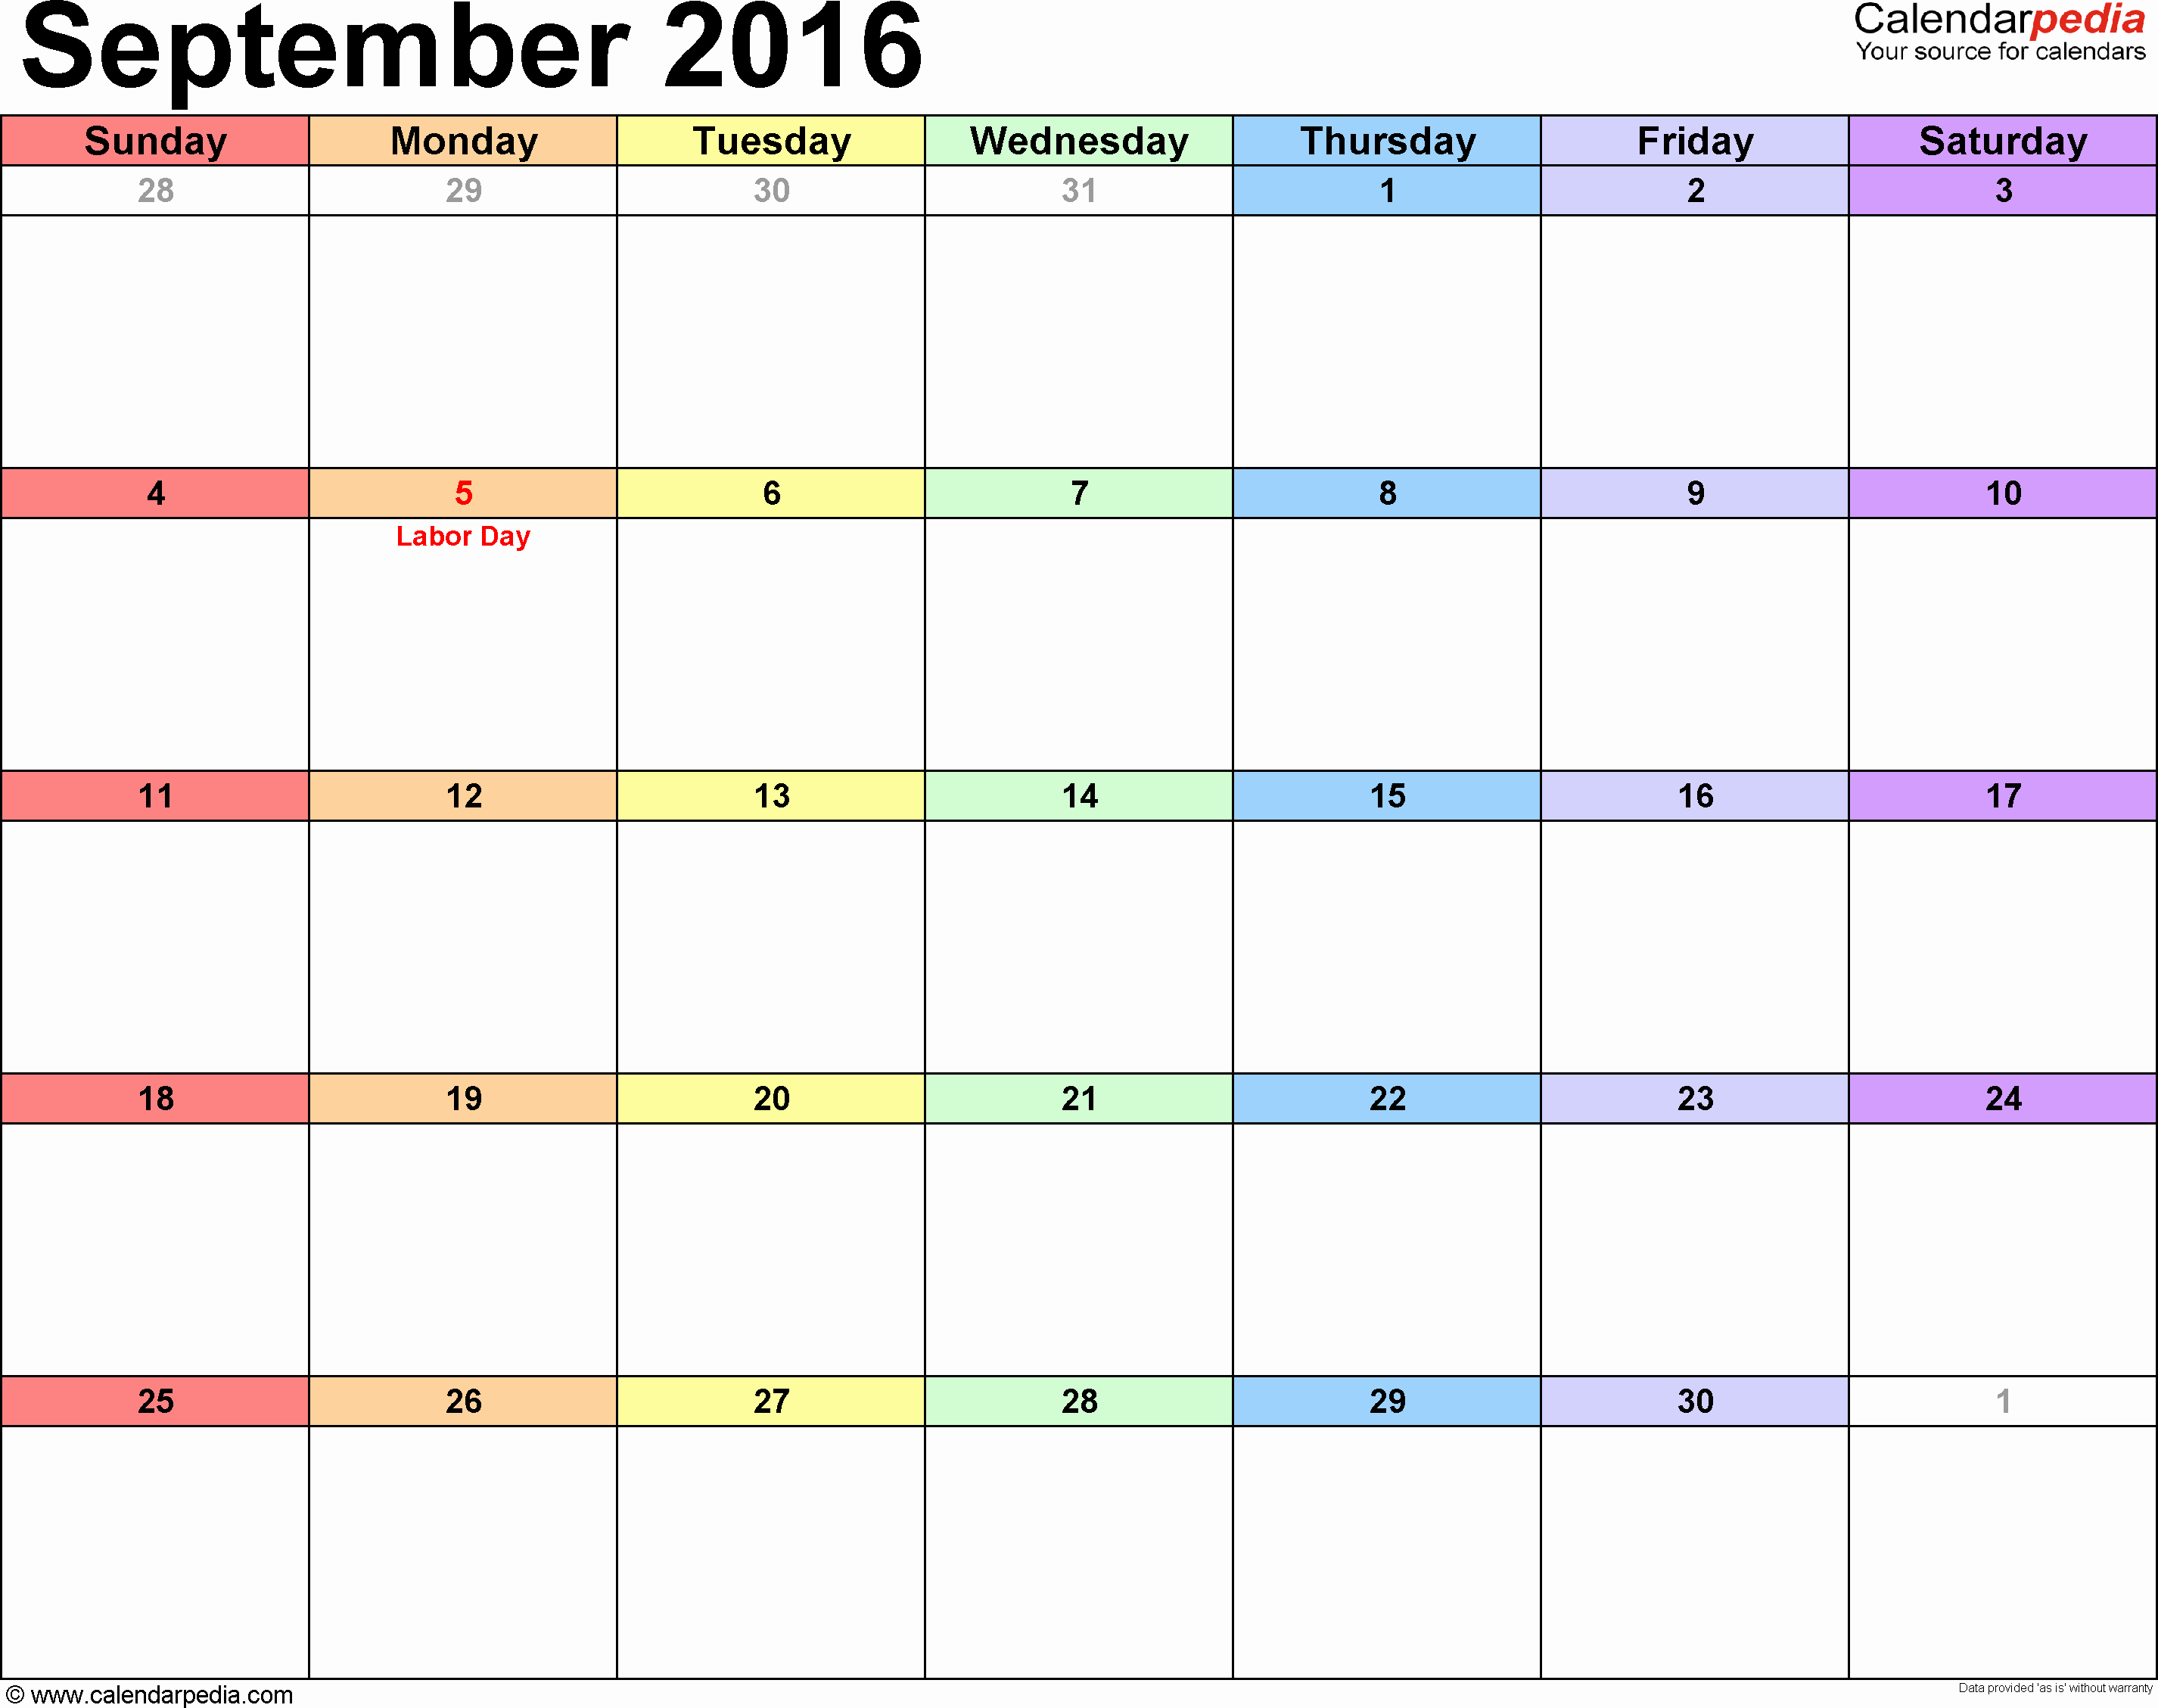 September 2017 Printable Calendar Word Inspirational September 2016 Calendars for Word Excel & Pdf